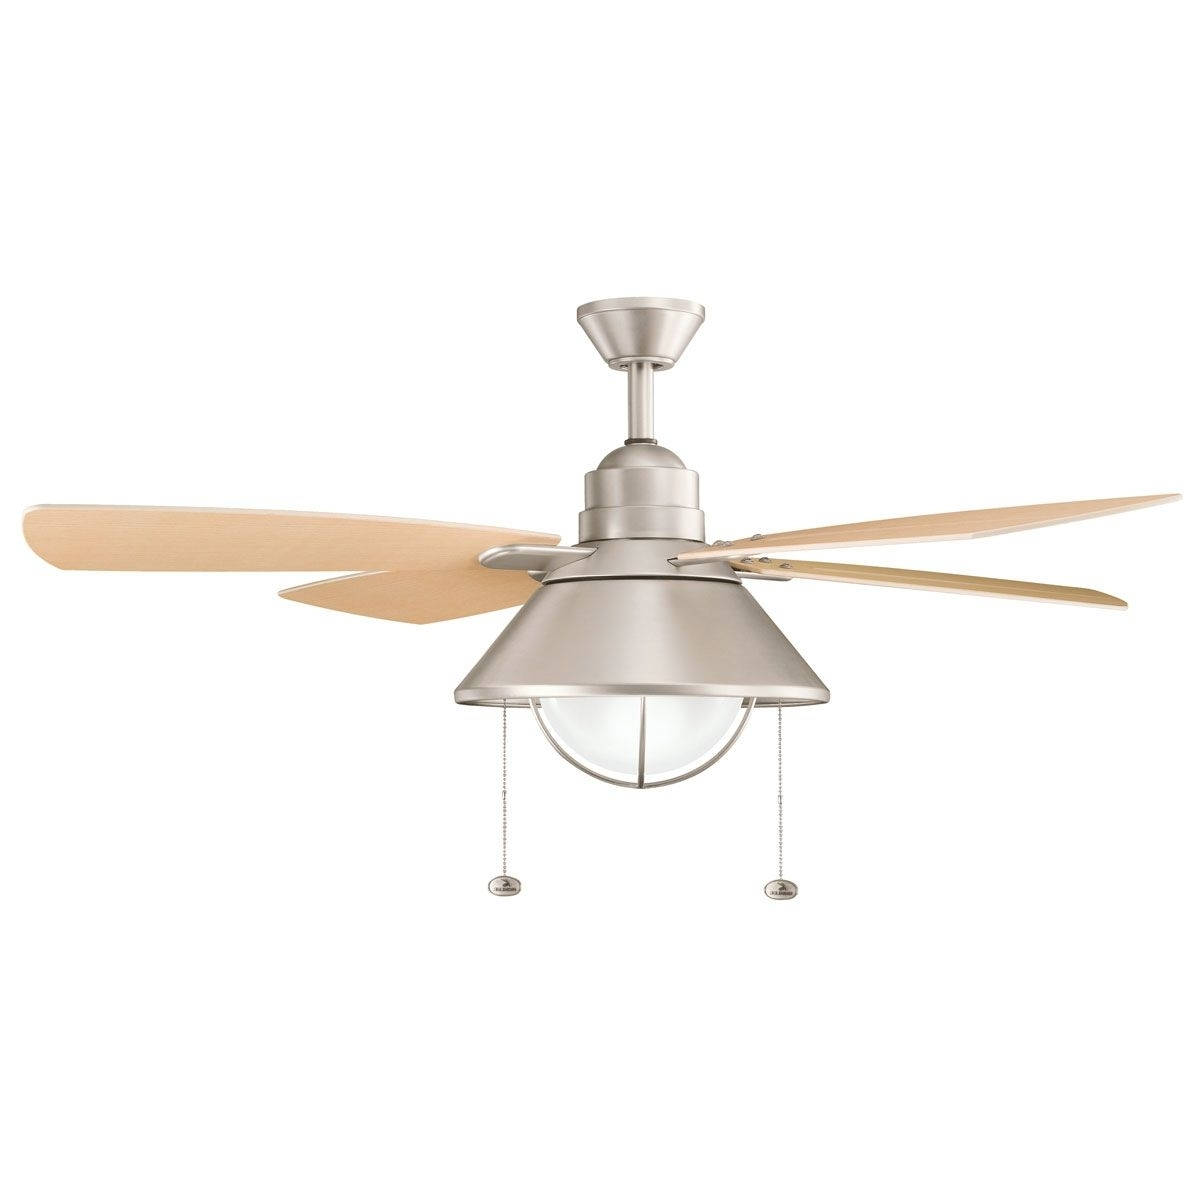 Kichler Fans Seaside Ceiling Fan In Brushed Nickel (View 14 of 20)